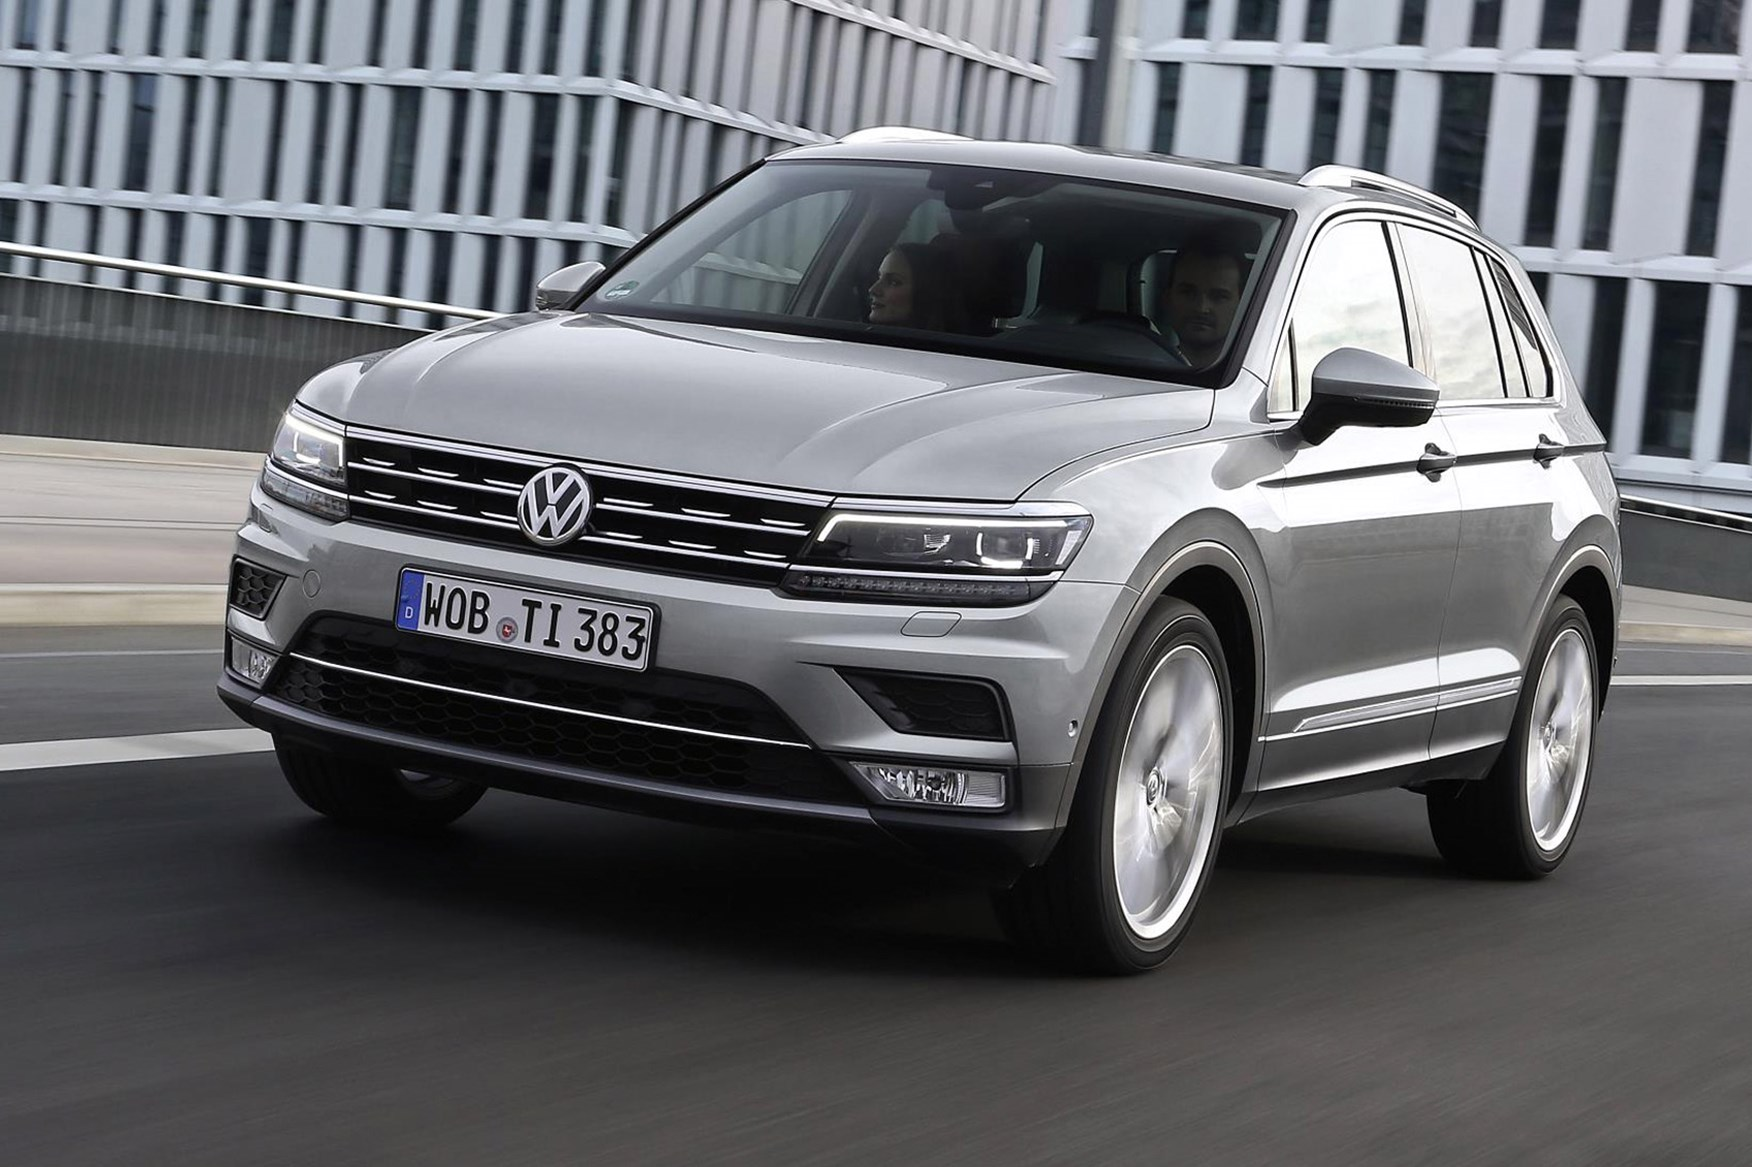 tiguan-001 Interesting Info About 2018 Vw Tiguan R Line with Mesmerizing Pictures Cars Review